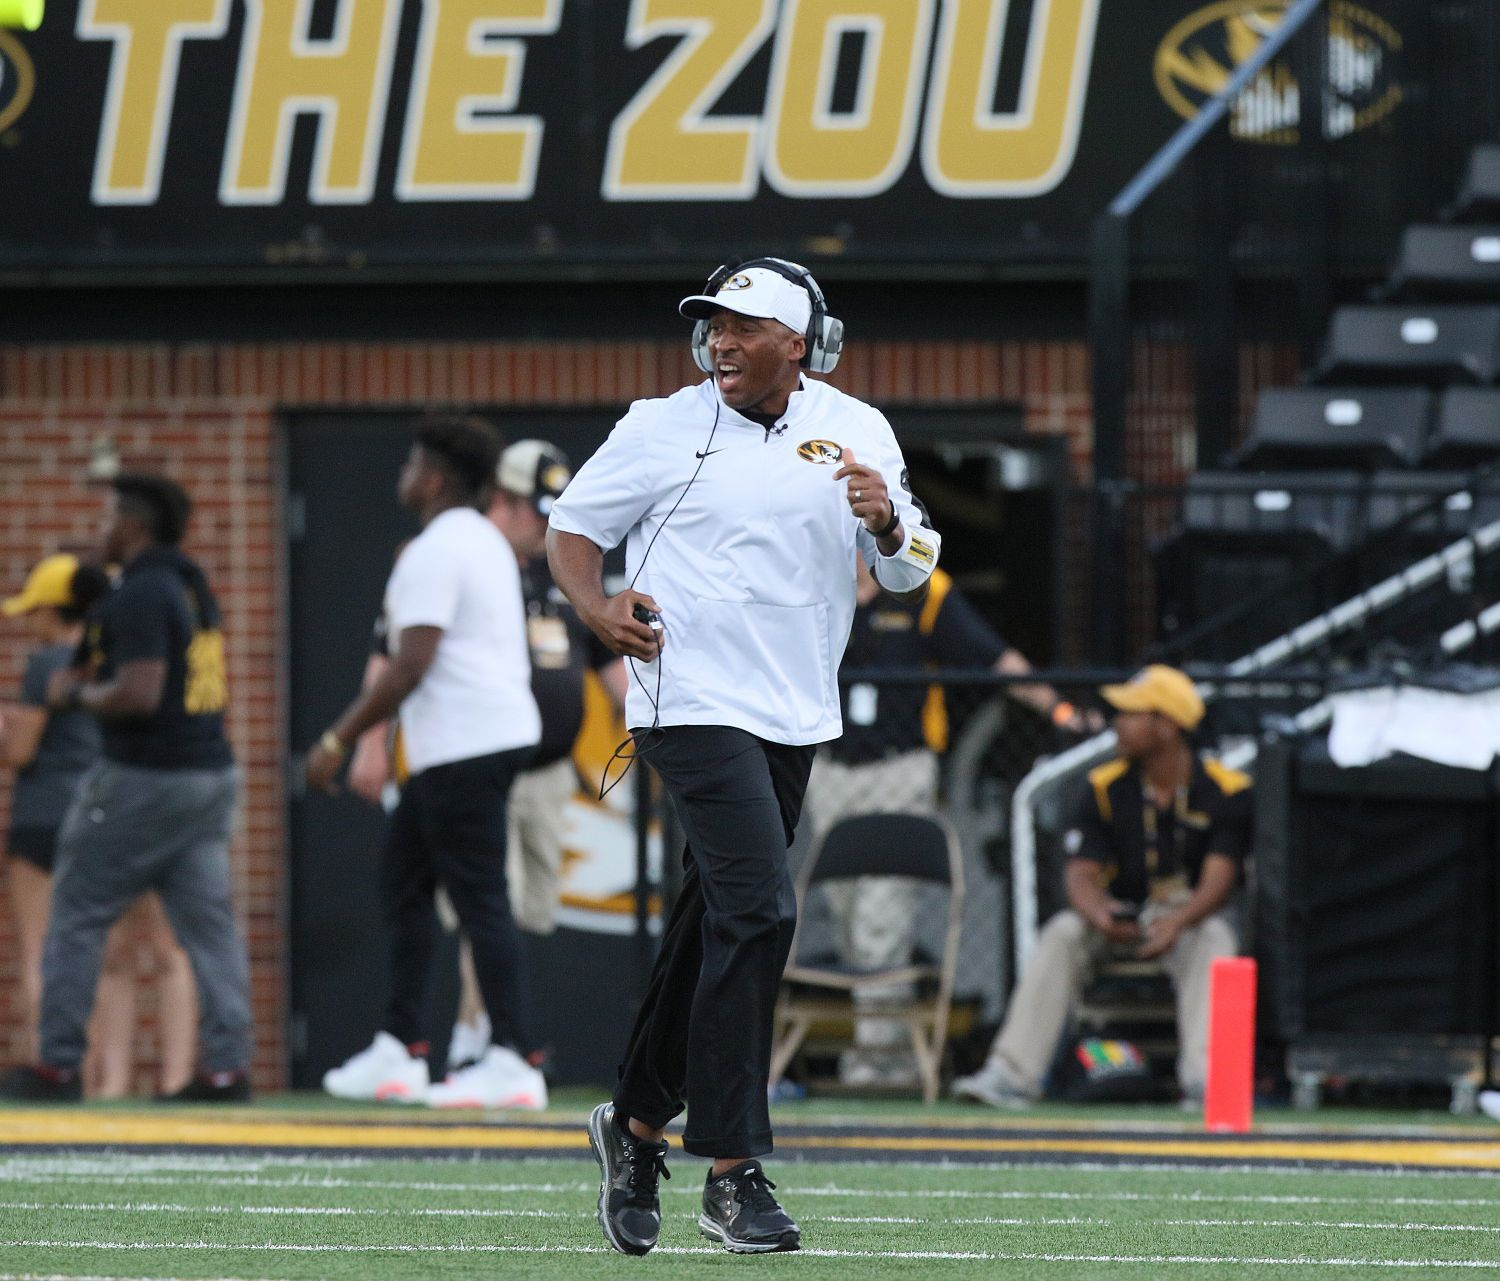 Missouri fires defensive coordinator Cross after slow start